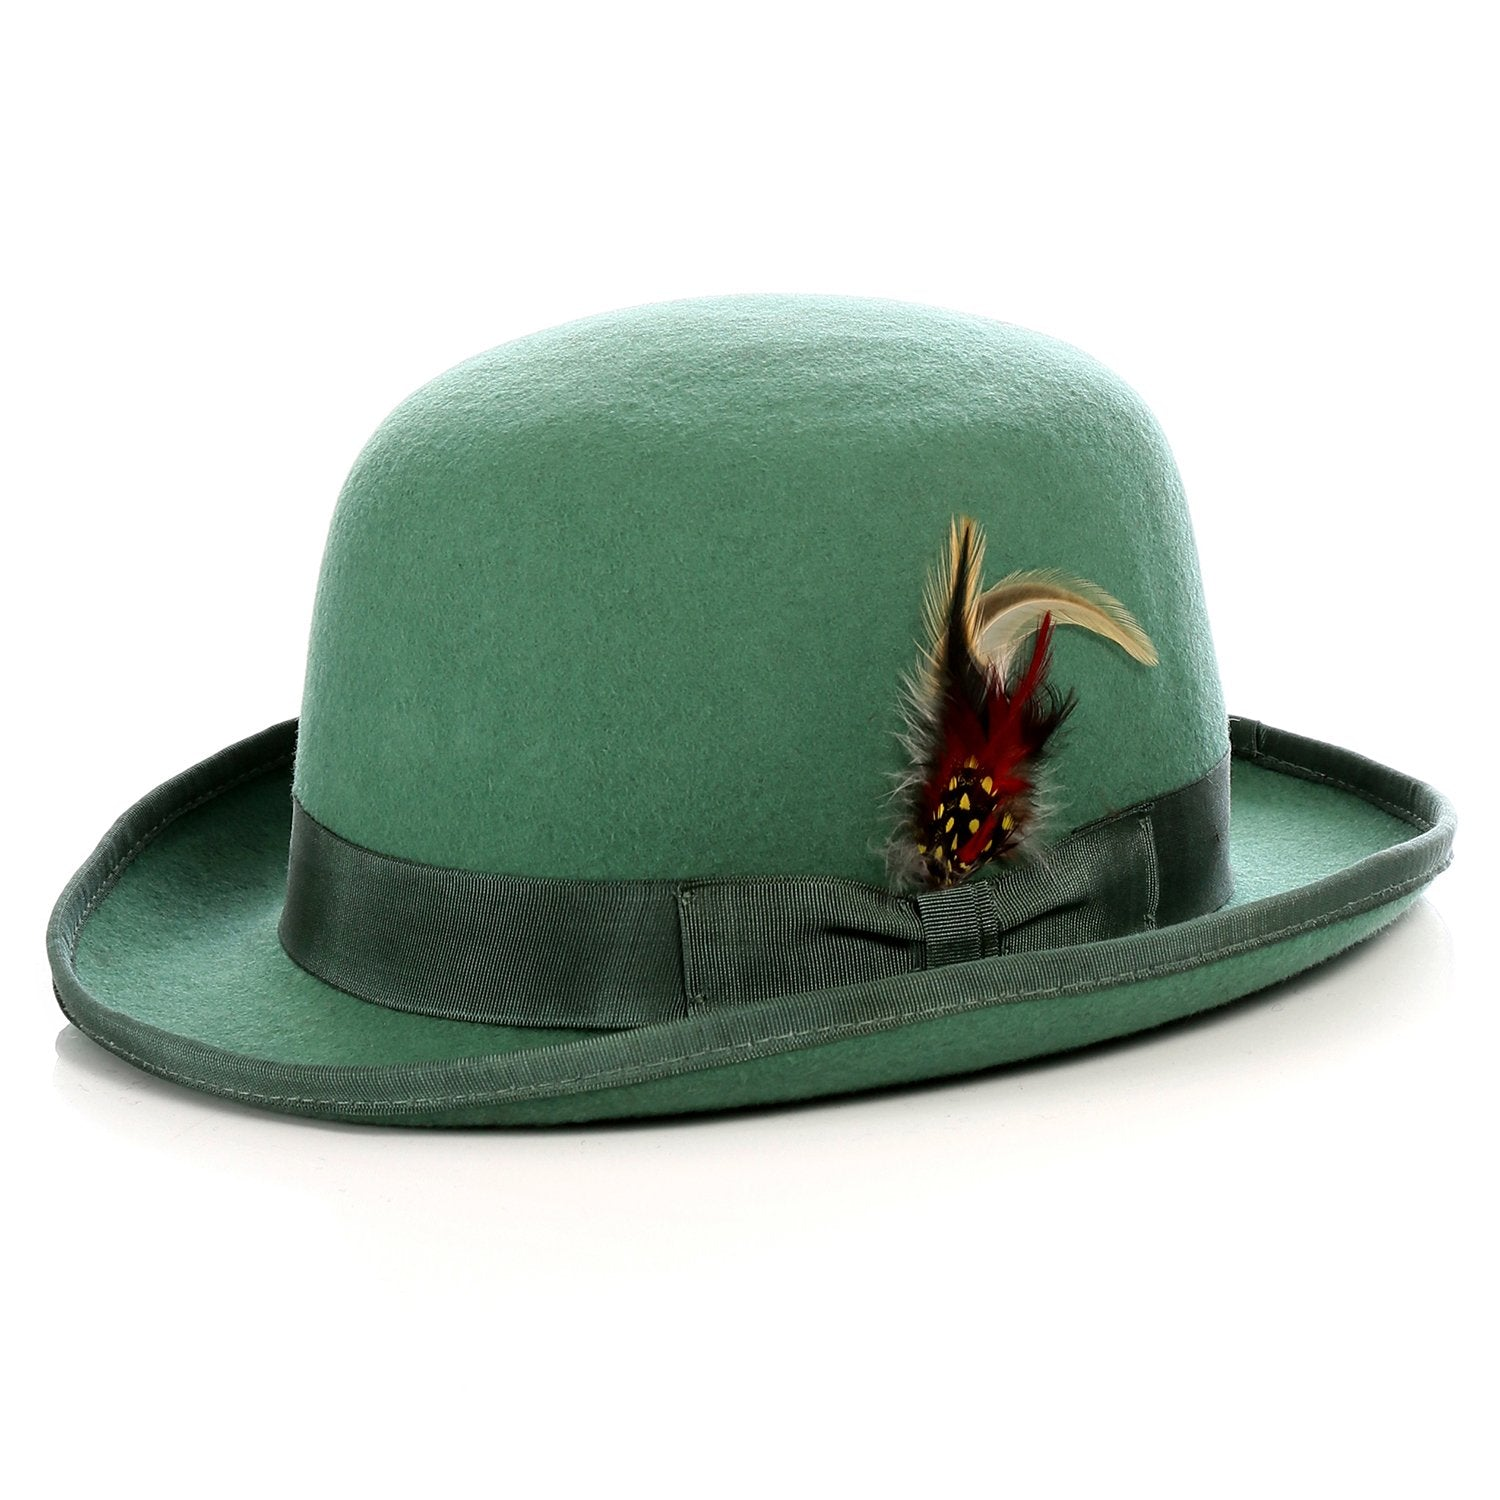 Premium Wool Hunter Green Derby Bowler Hat - Giorgio's Menswear